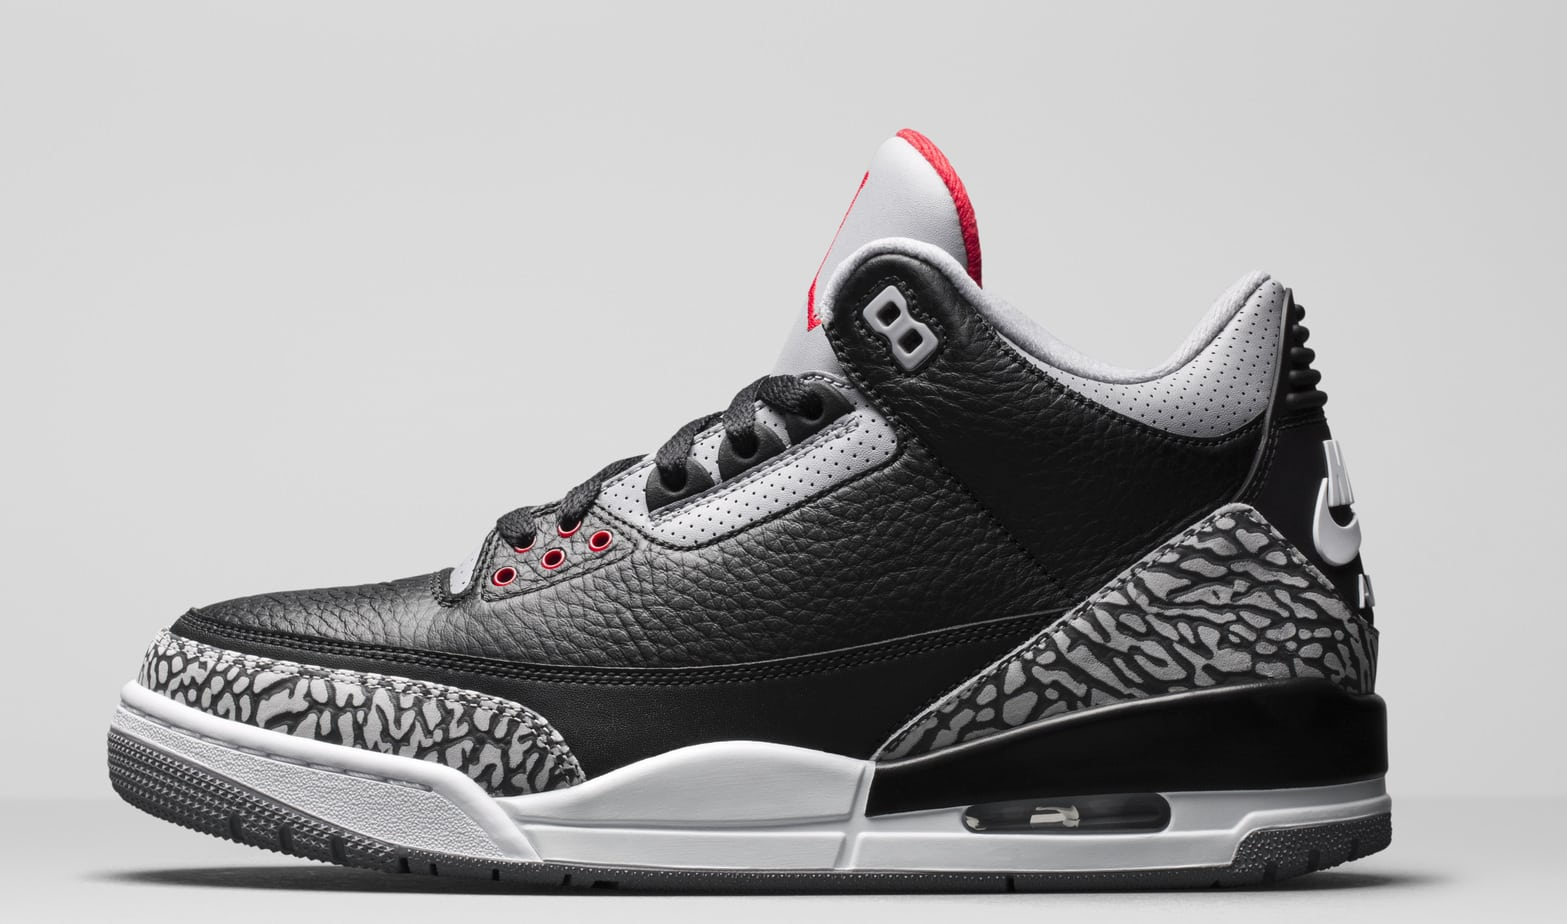 huge selection of d7204 3f3ba ... new zealand air jordan 3 black cement 2018. release date february 17th  2018. price